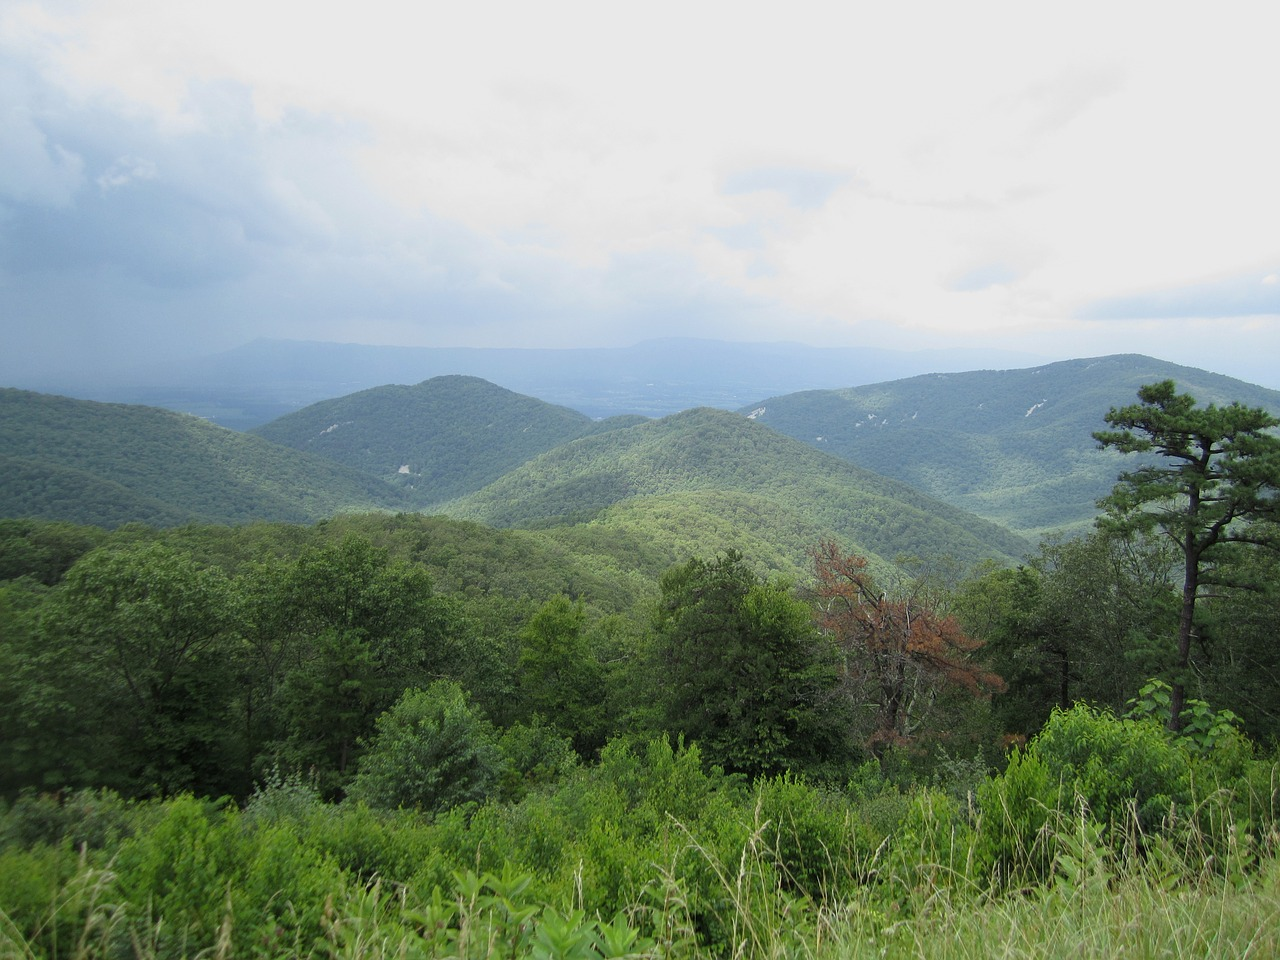 Blue Ridge Parkway is home to many of Grandfather Mountain State Park's trailheads